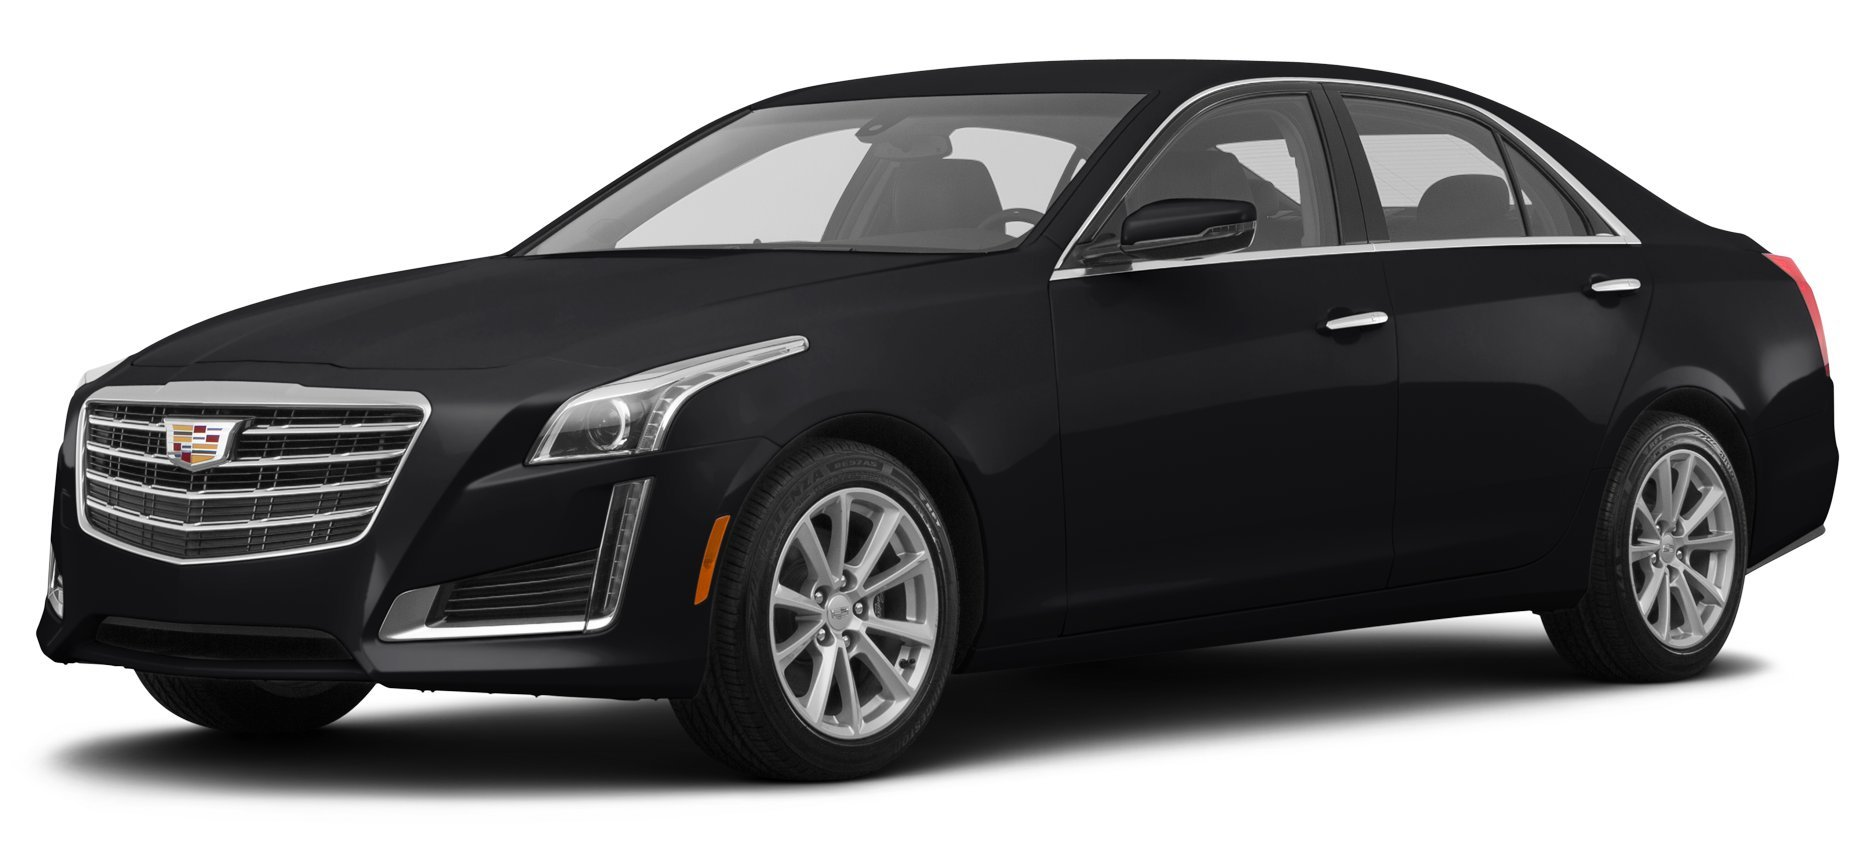 Amazon.com: 2017 Cadillac CTS Reviews, Images, and Specs: Vehicles